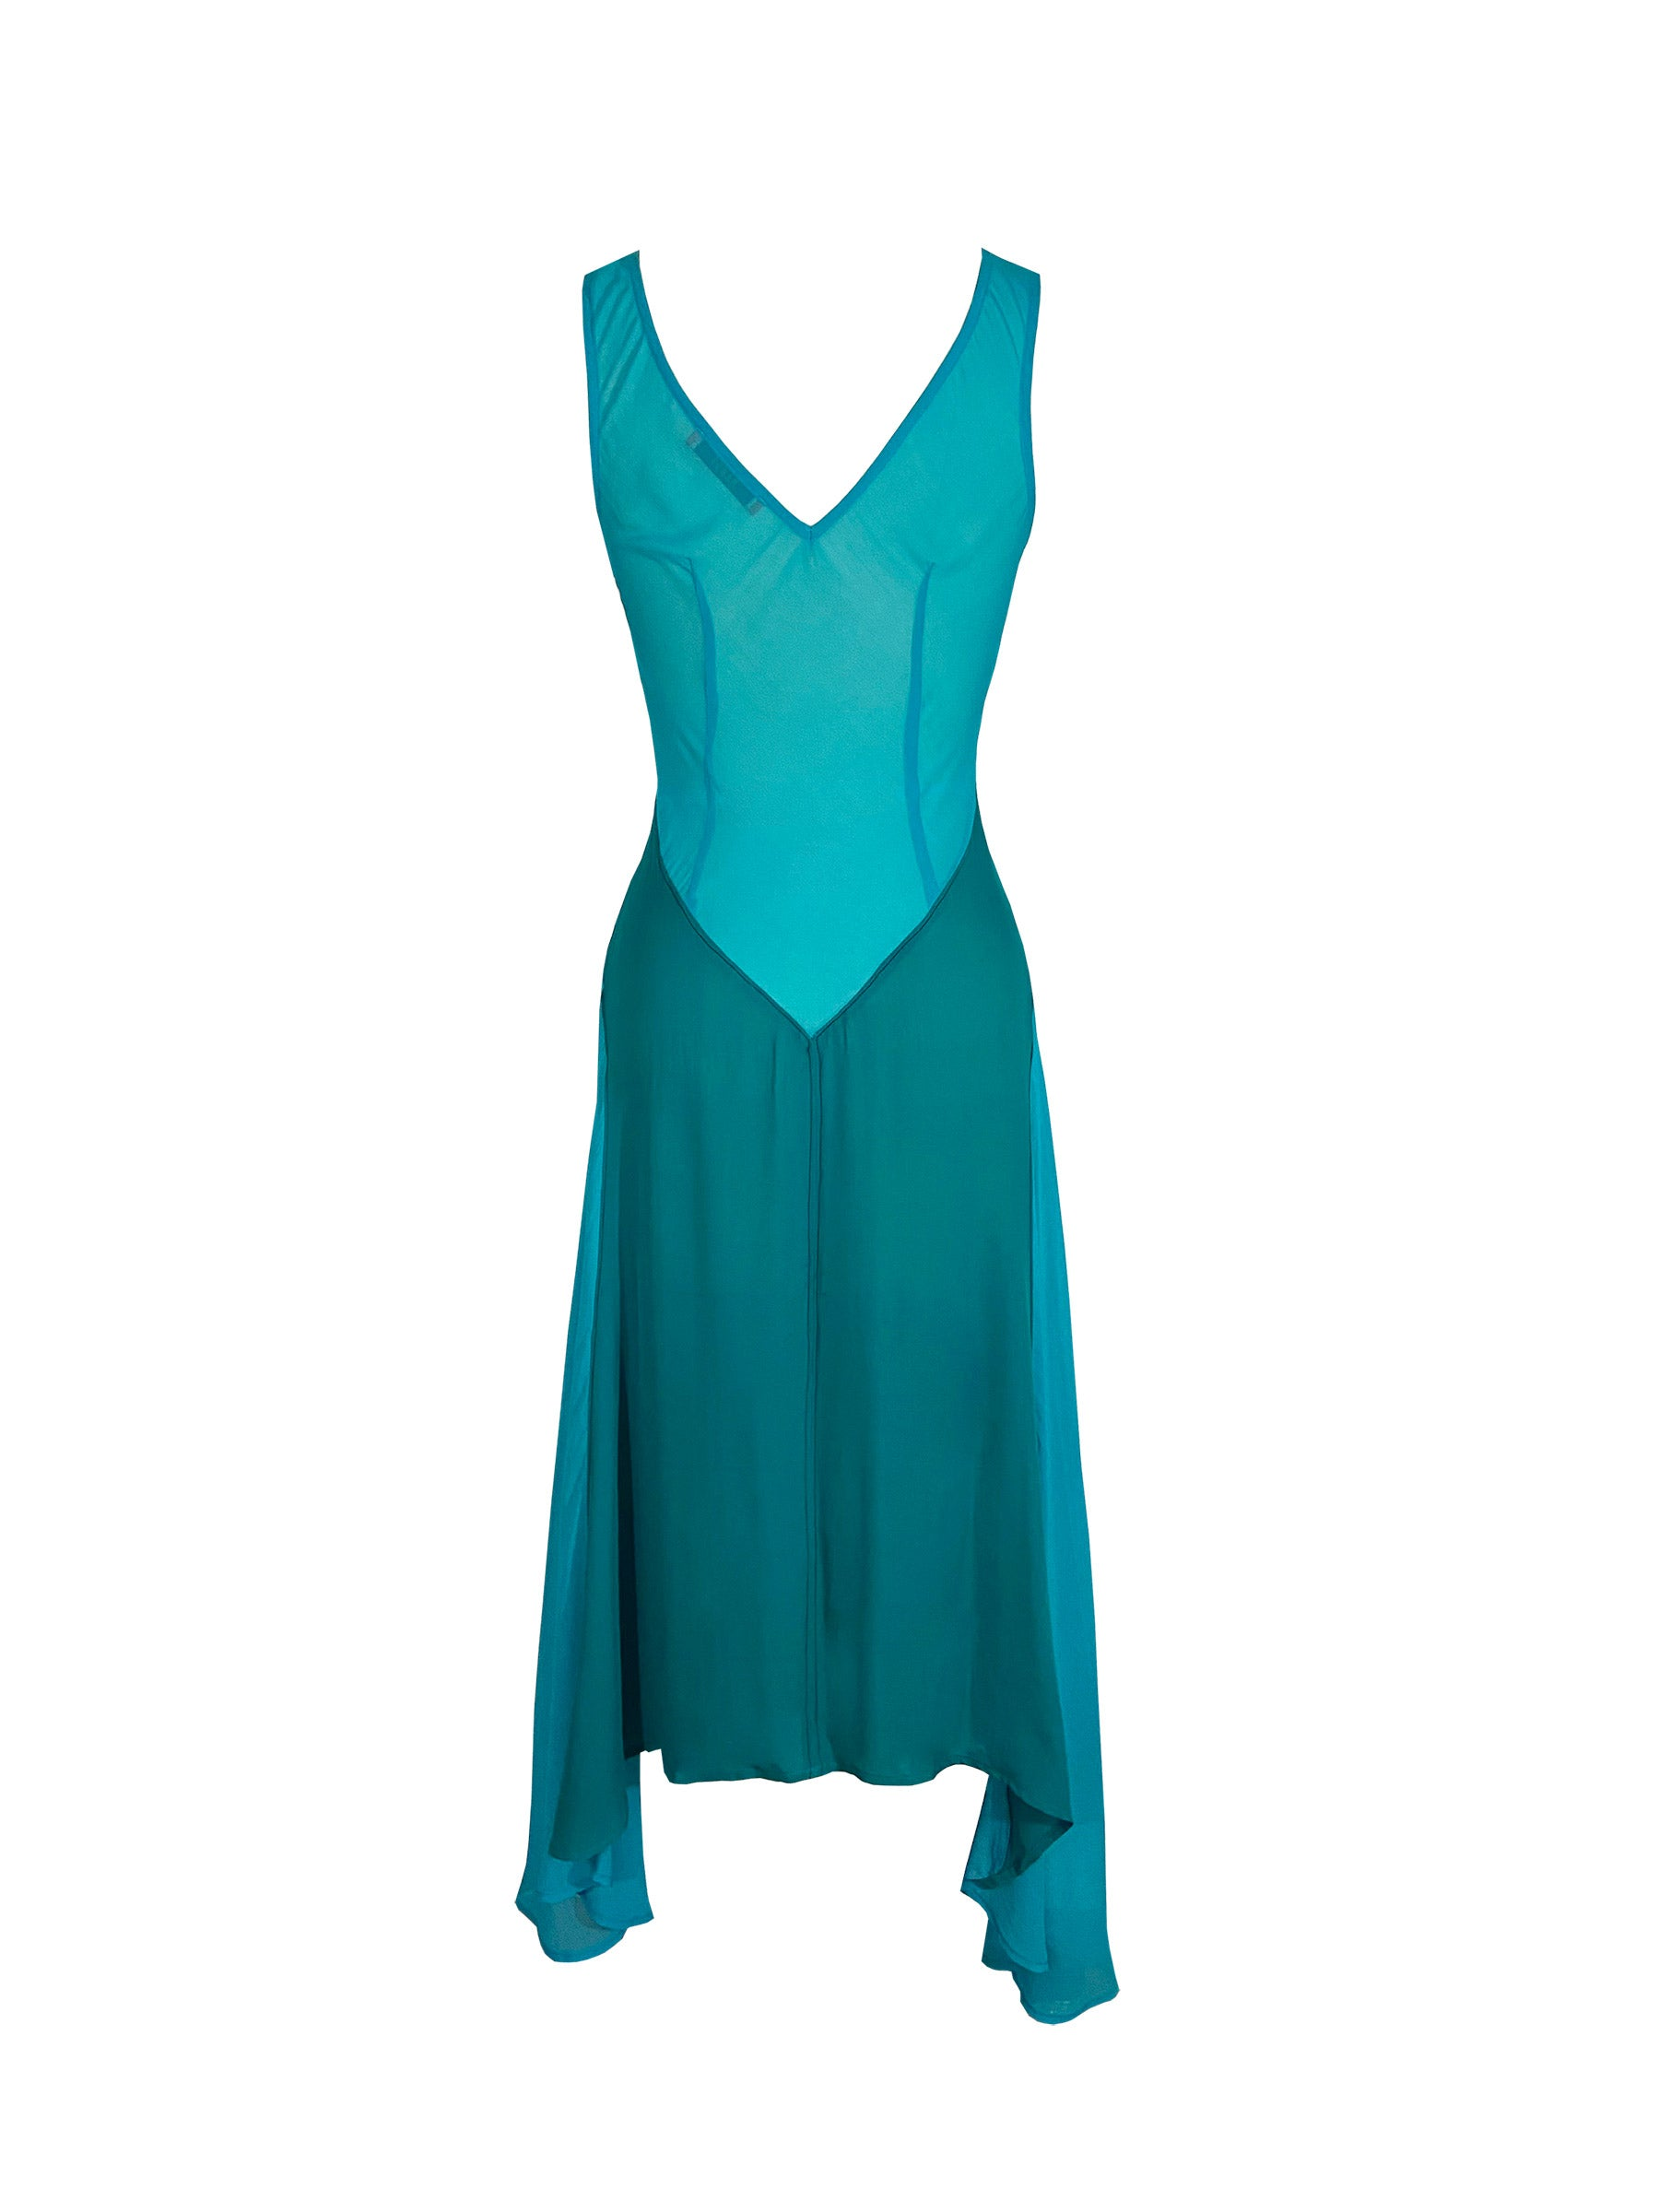 Archive Tex Silk Dress in Blue/Teal